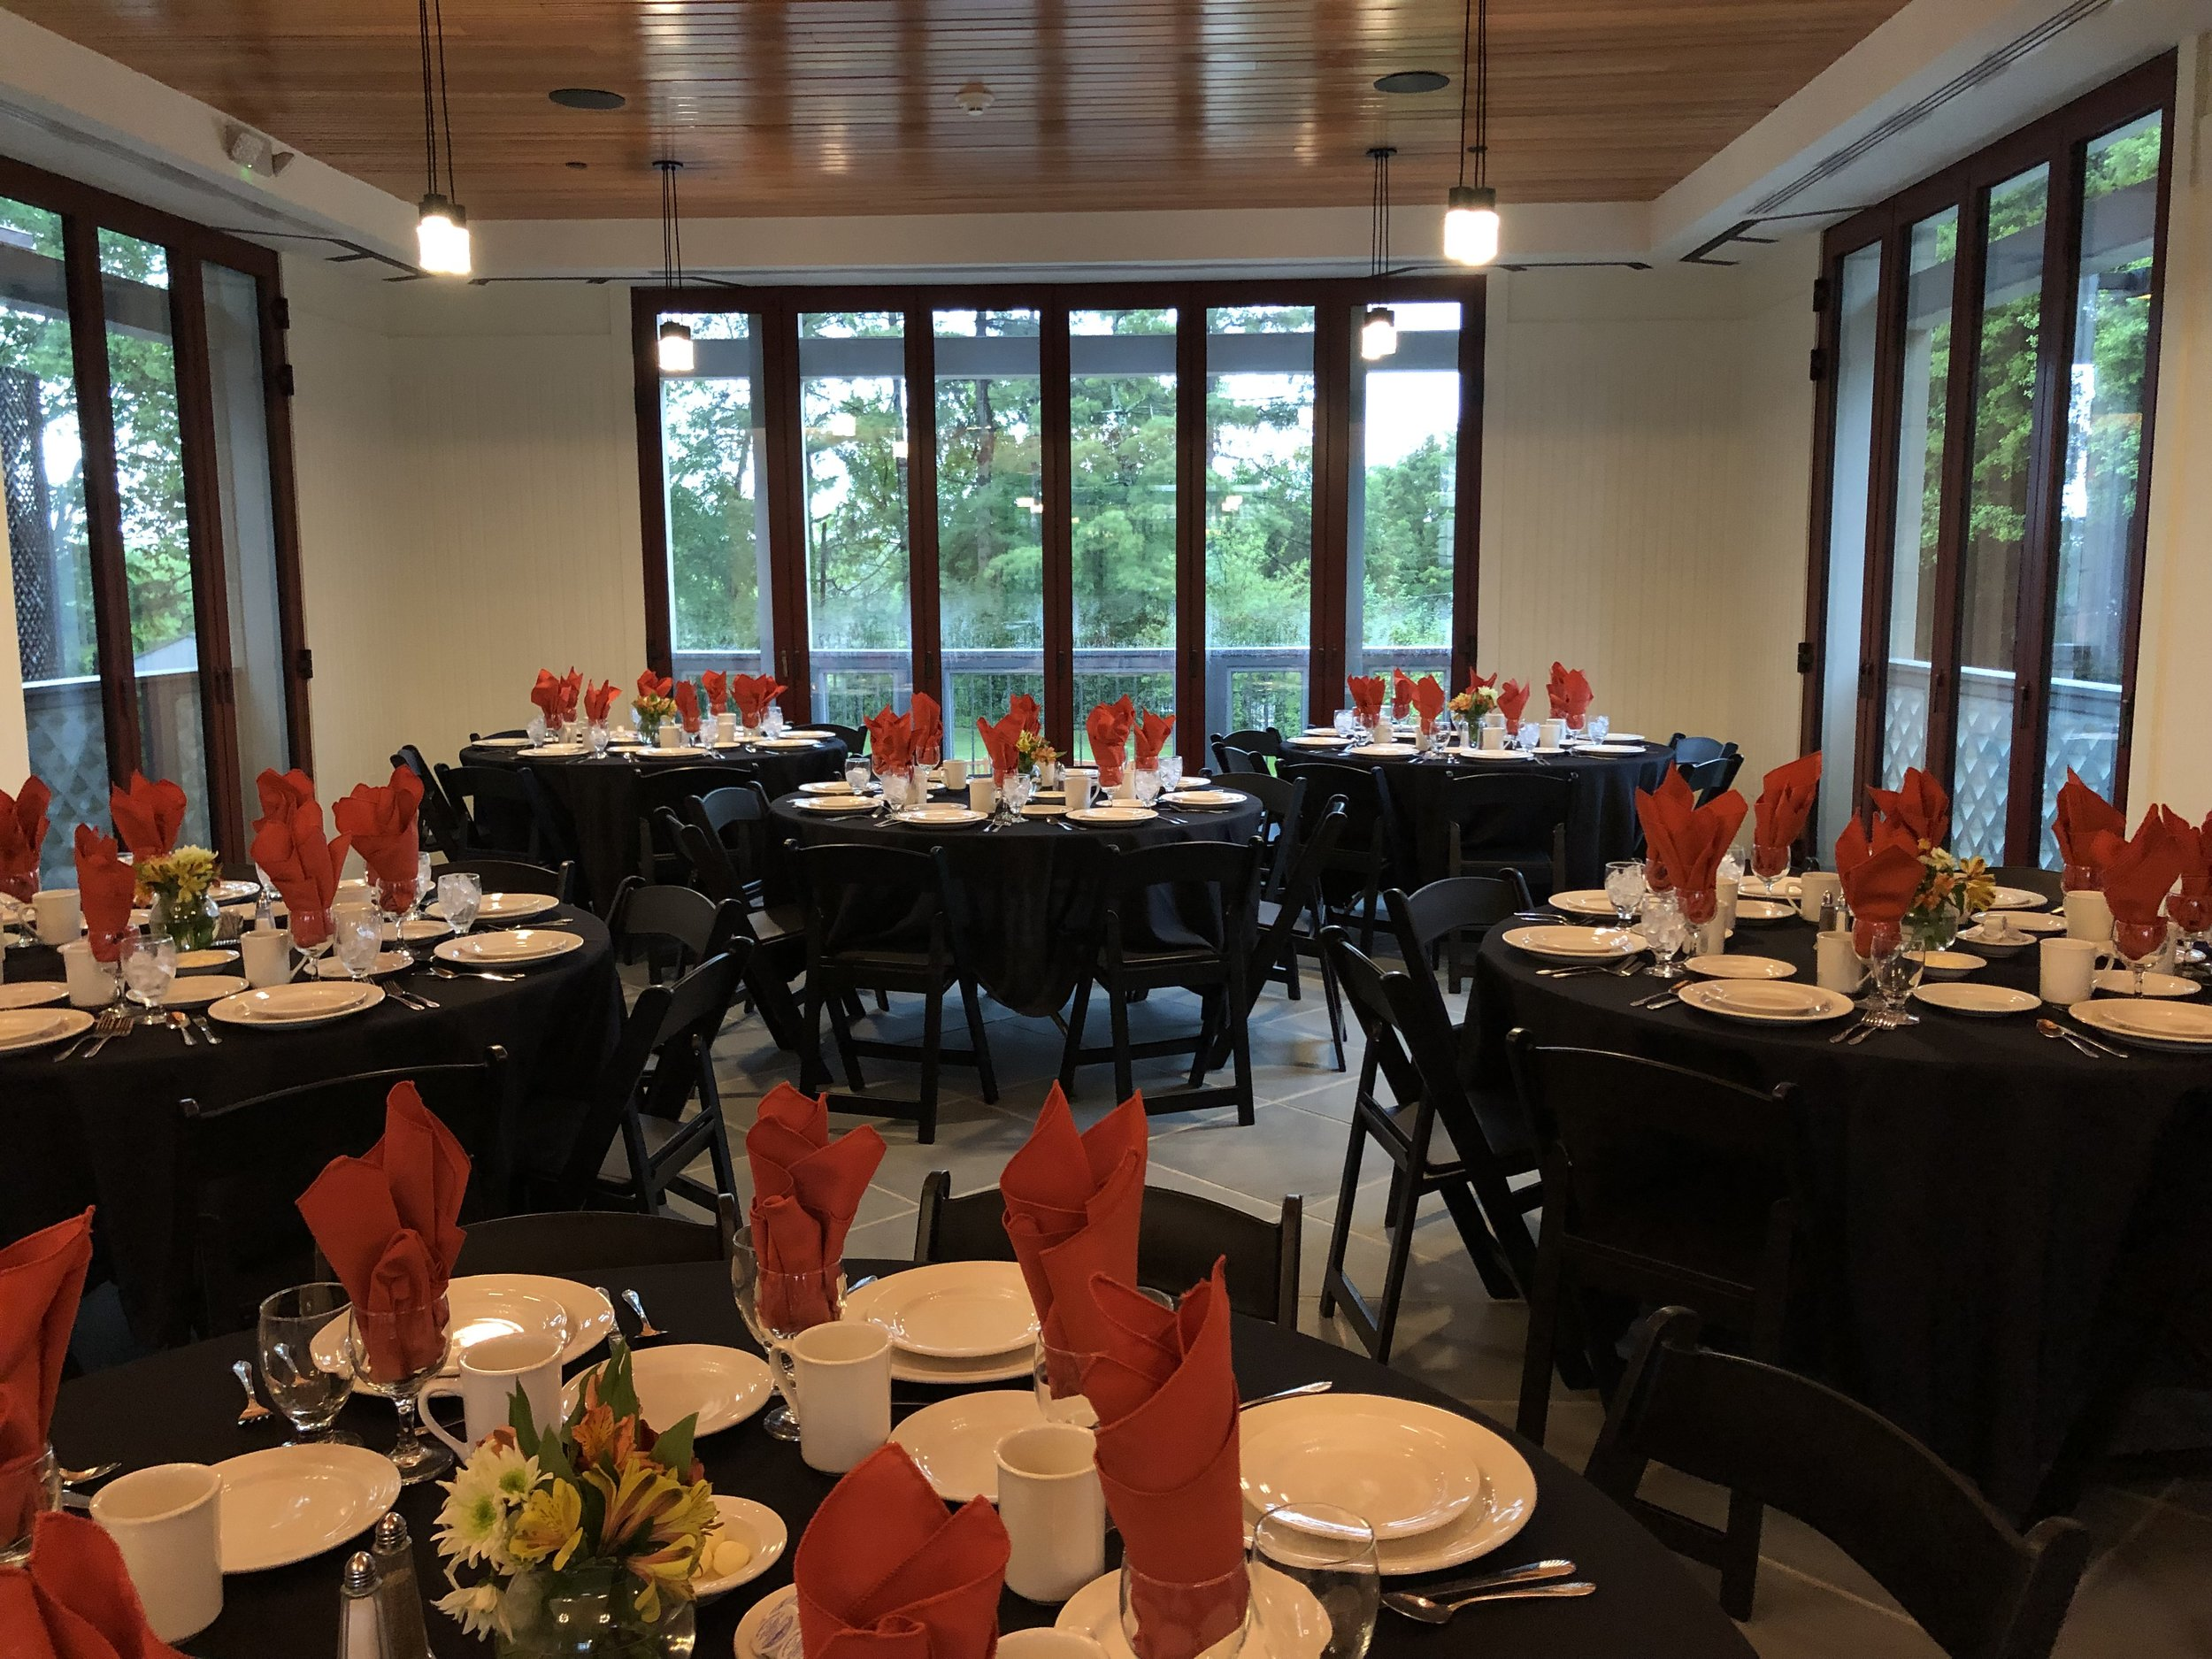 Set-up for the Class of 1970 dinner in the Cox Wing Friday of Reunions